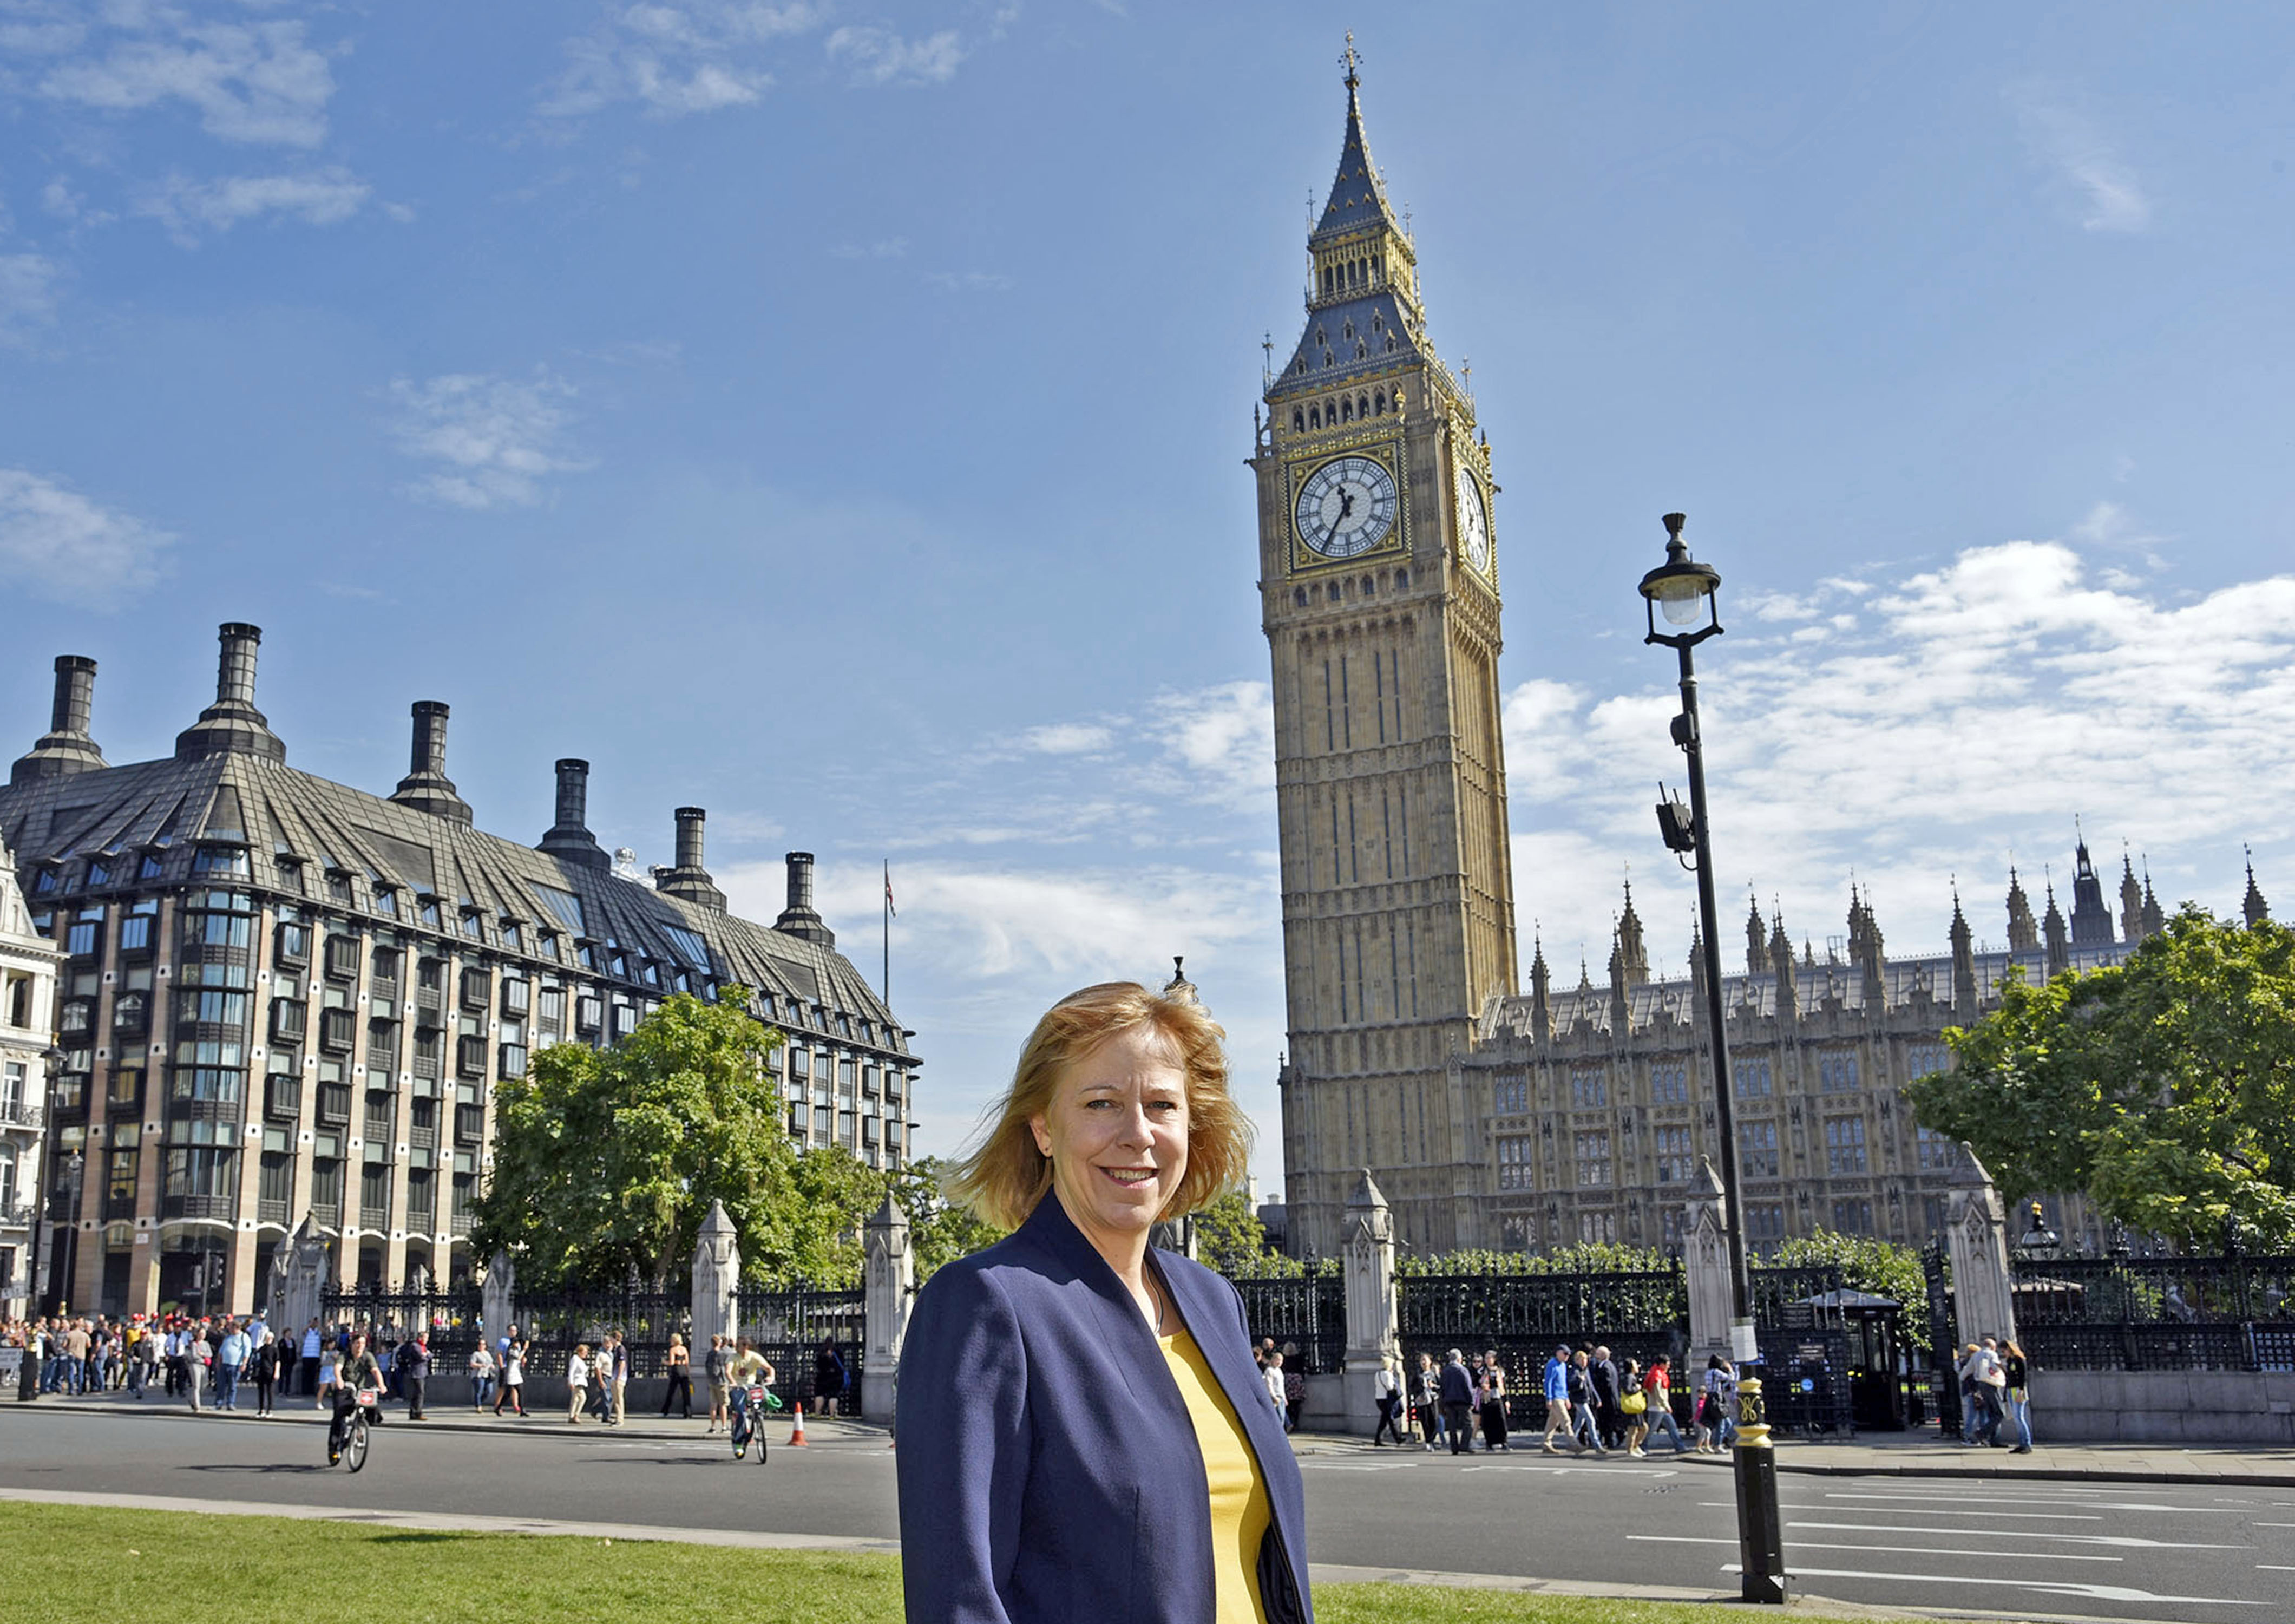 Ruth standing outside Big Ben